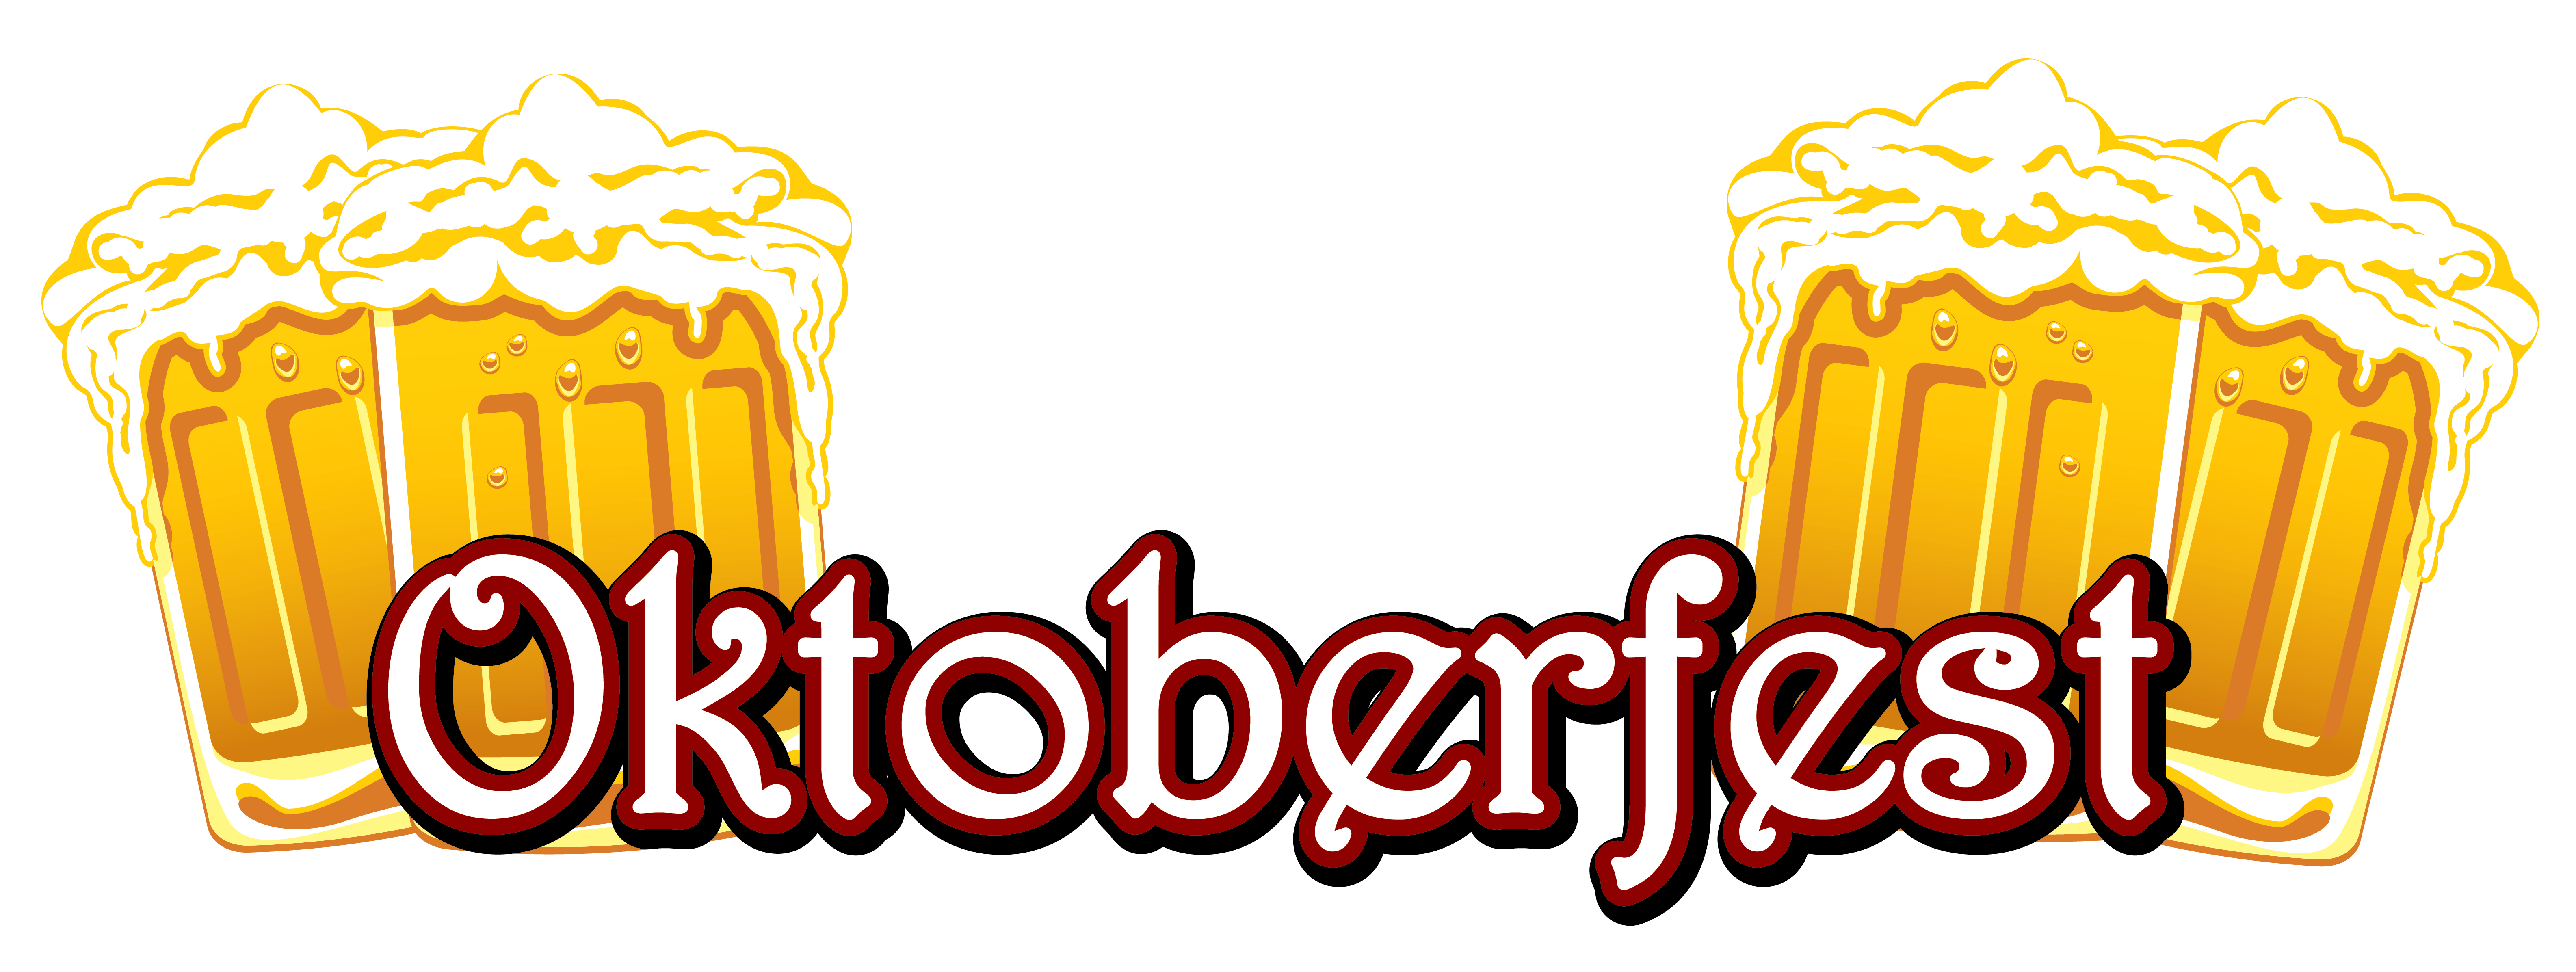 Oktoberfest Text and Beers PNG Clipart Image.